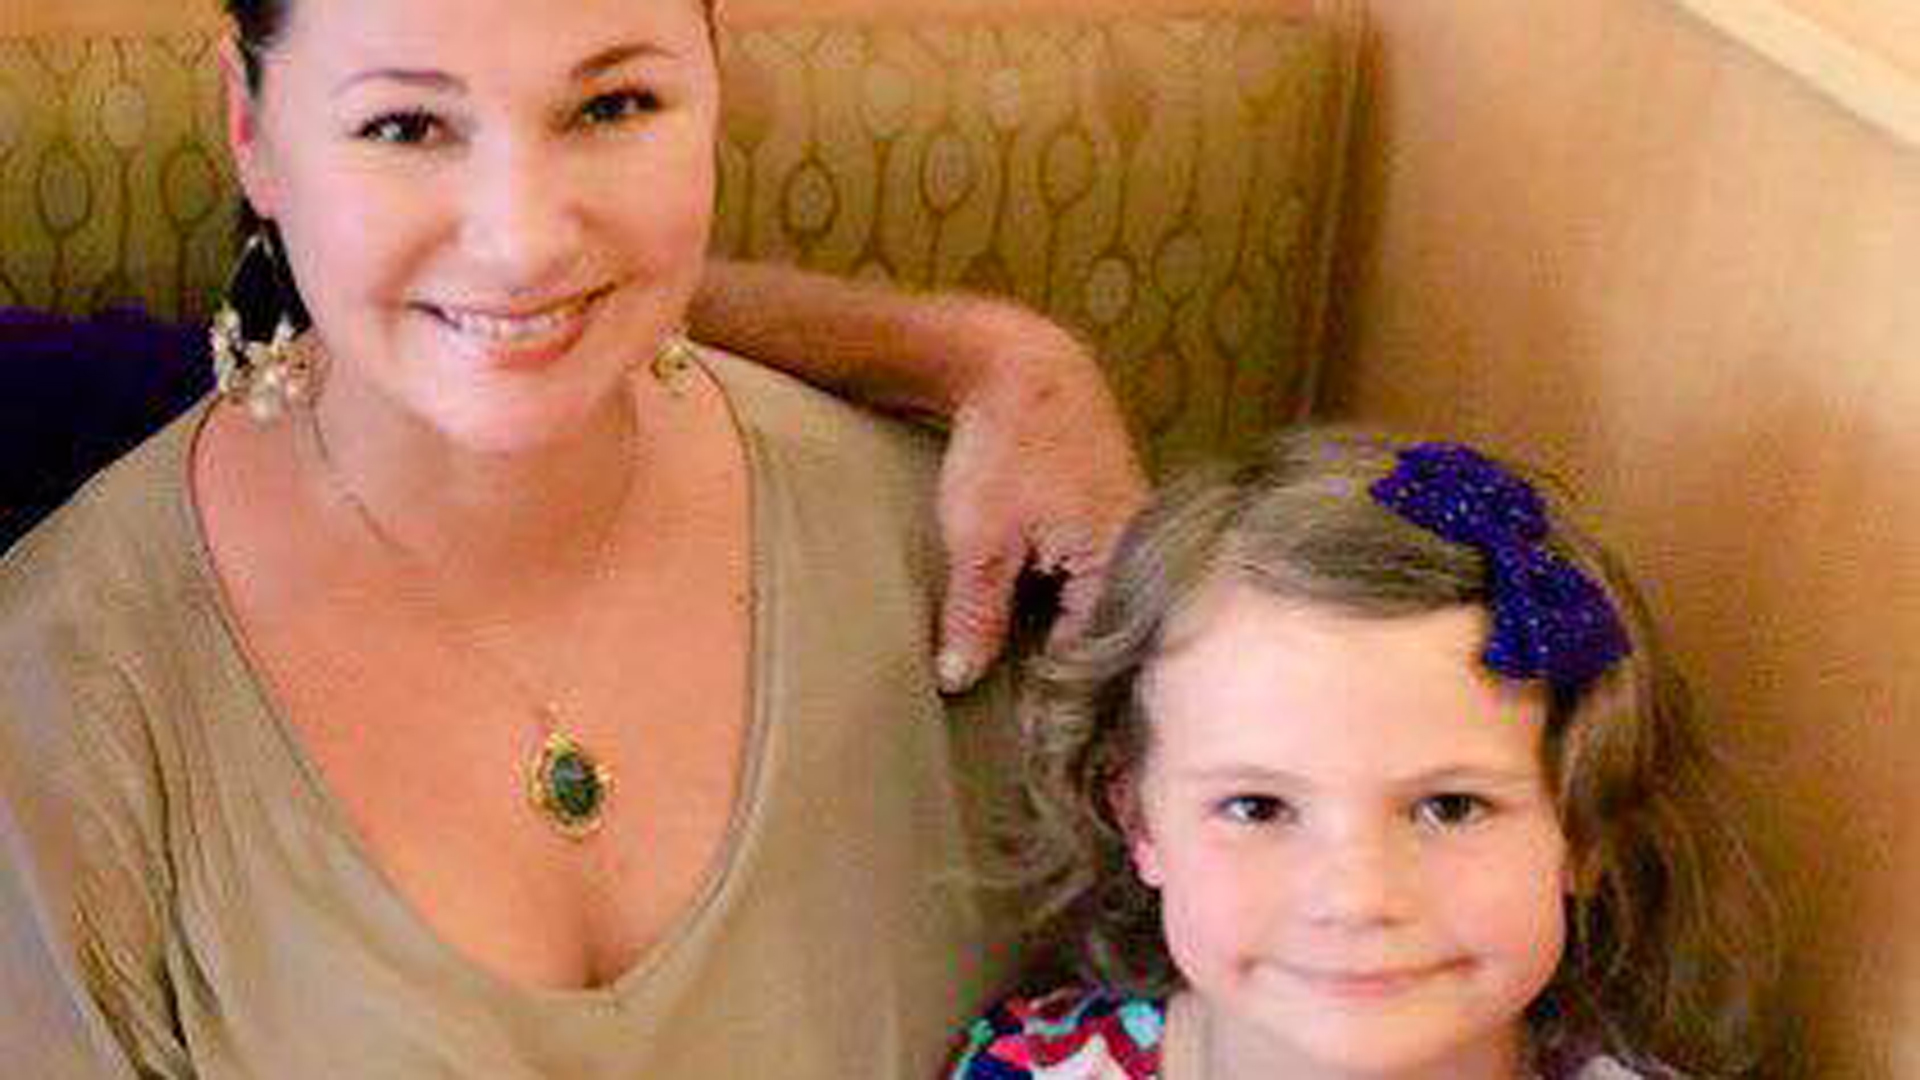 Amanda Kay Key and Haley Marie Vilven are seen in an image provided by the Los Angeles Police Department.